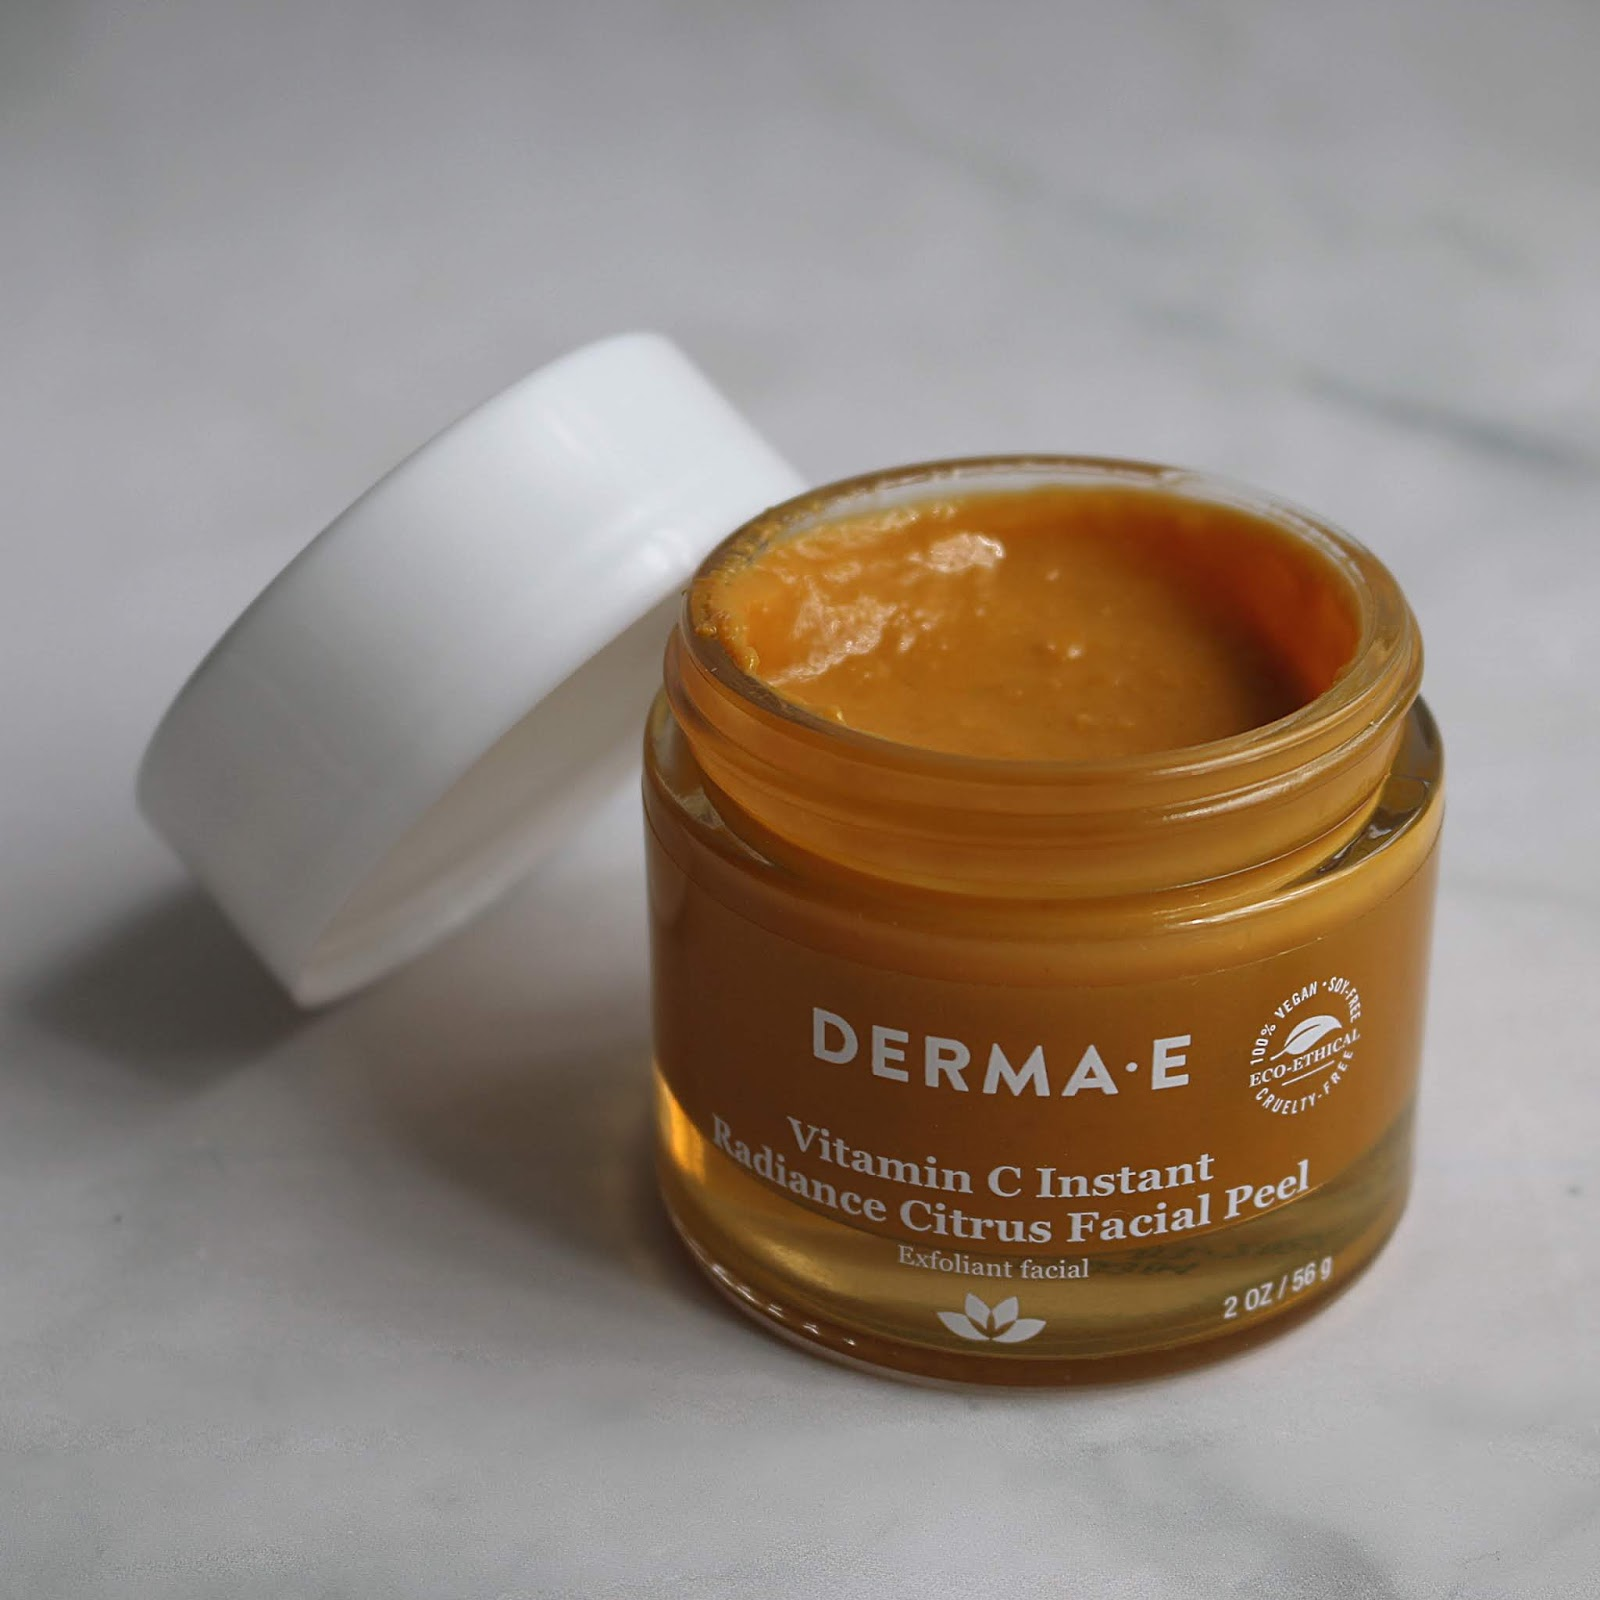 DERMA E Vitamin C Instant Radiance Citrus Facial Peel Review